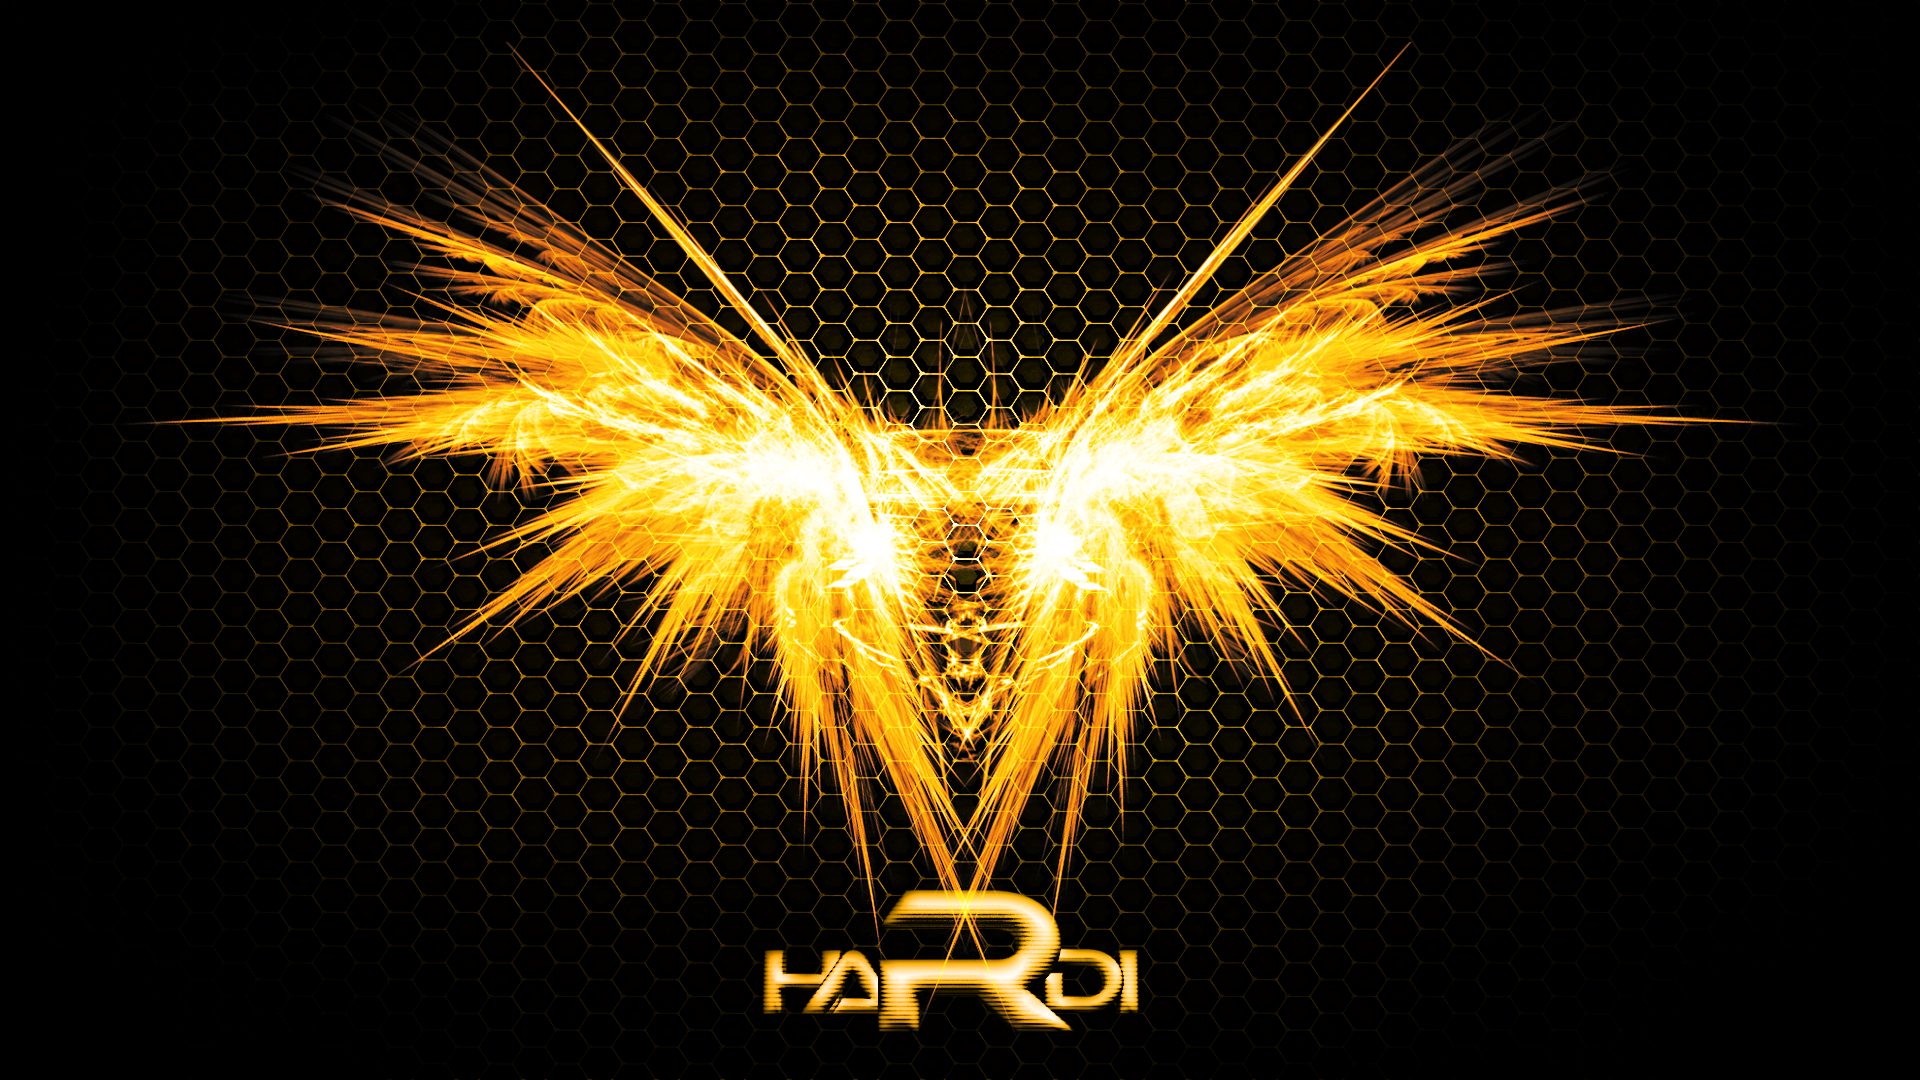 Hardi's Logo on fire! (Wallpaper)(With font) by Hardii